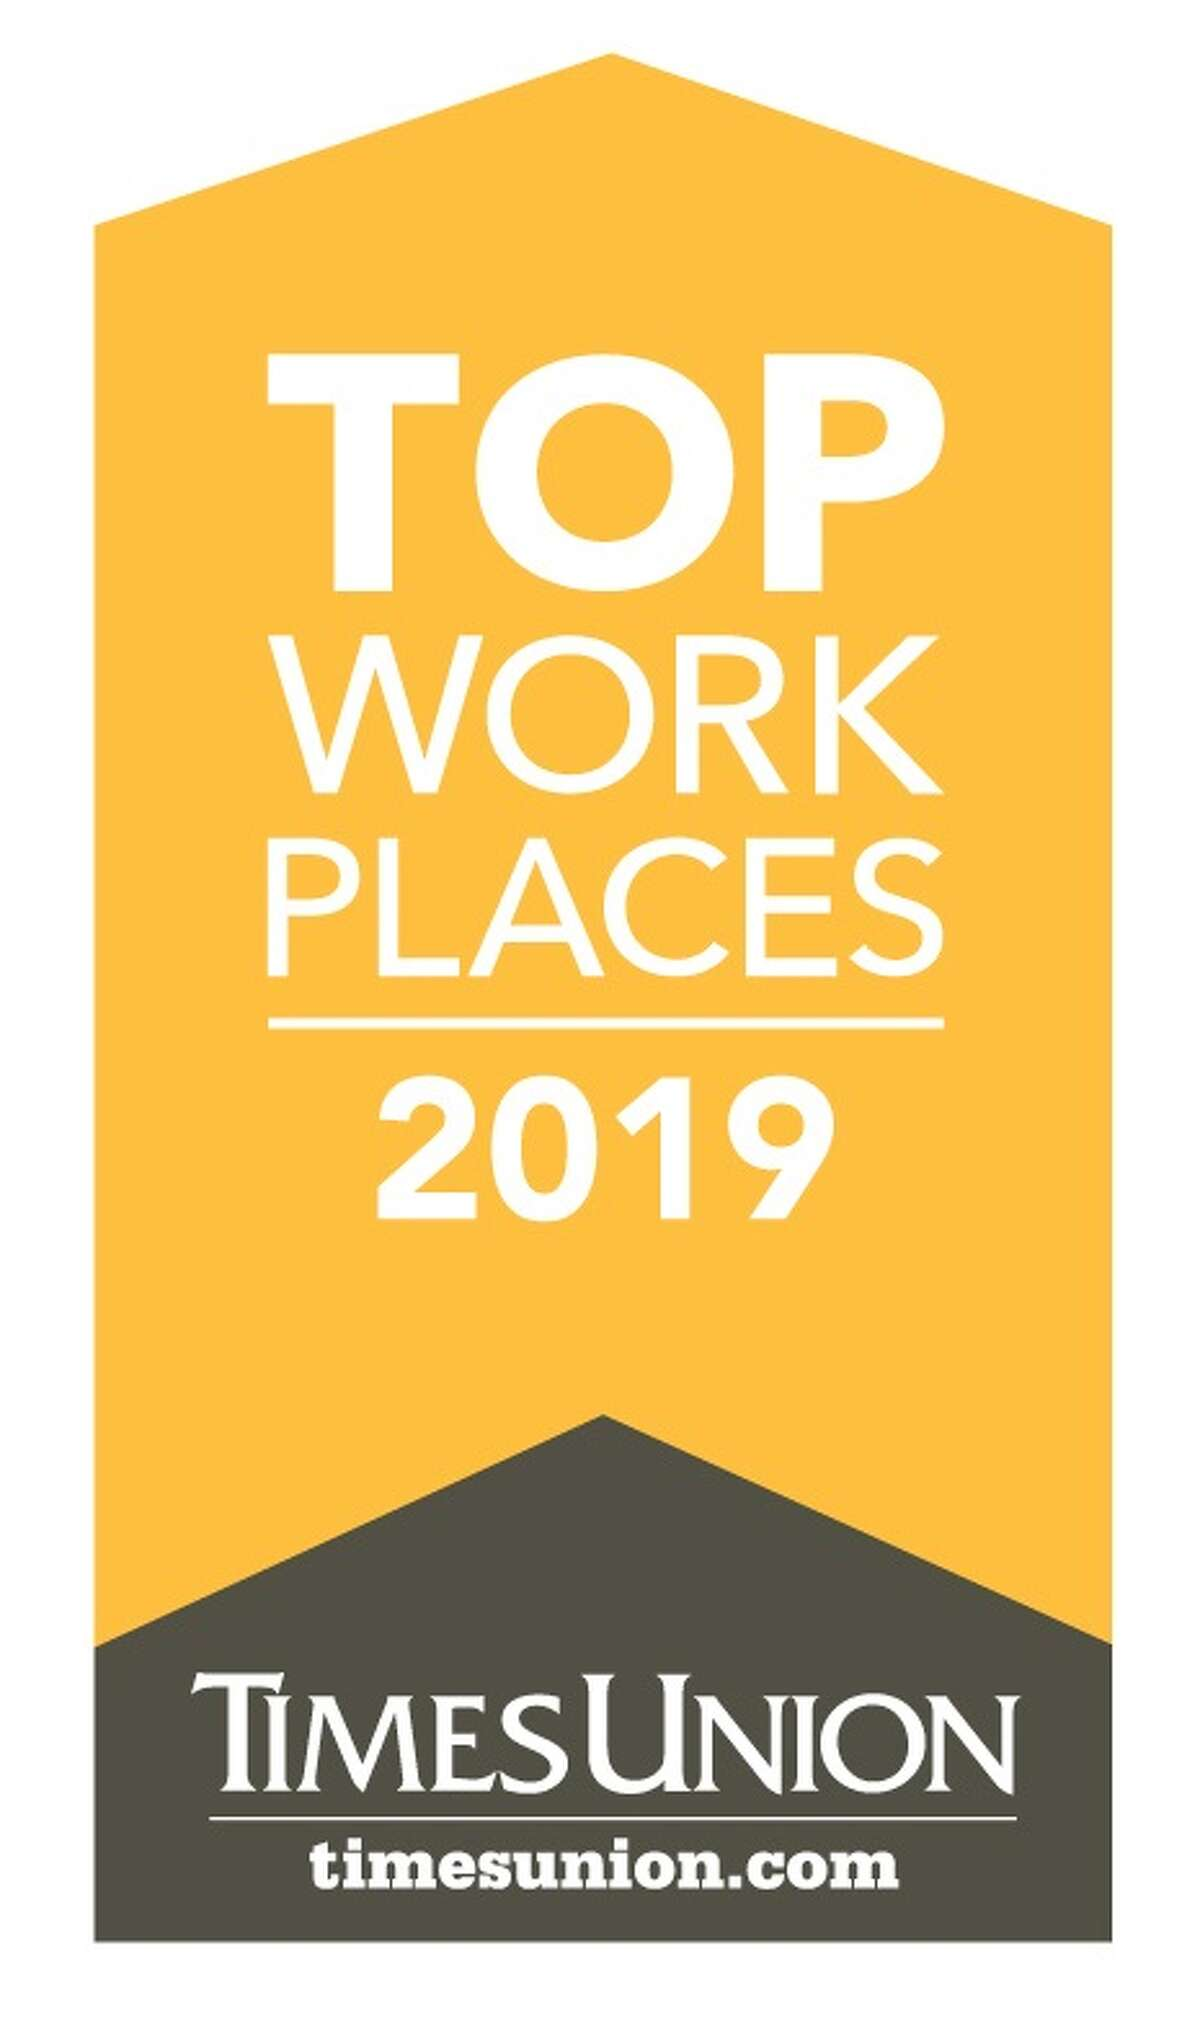 Top Workplaces 2019 logo